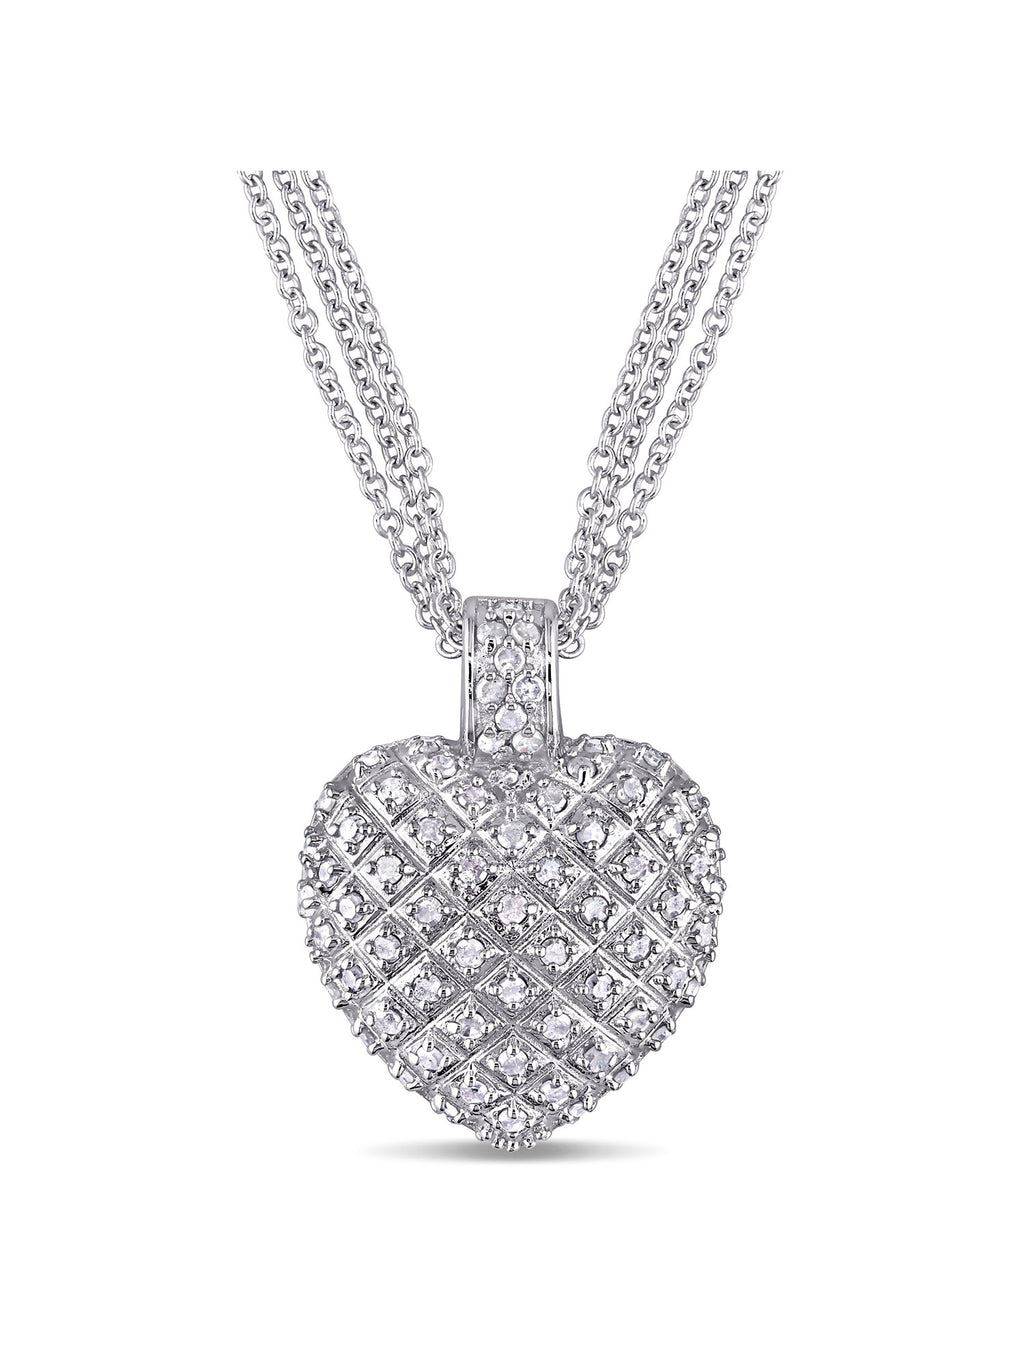 1 Carat T.W. Diamond Sterling Silver Heart Pendant Necklace picktookshop.myshopify.com [gogle] [sale] [online]